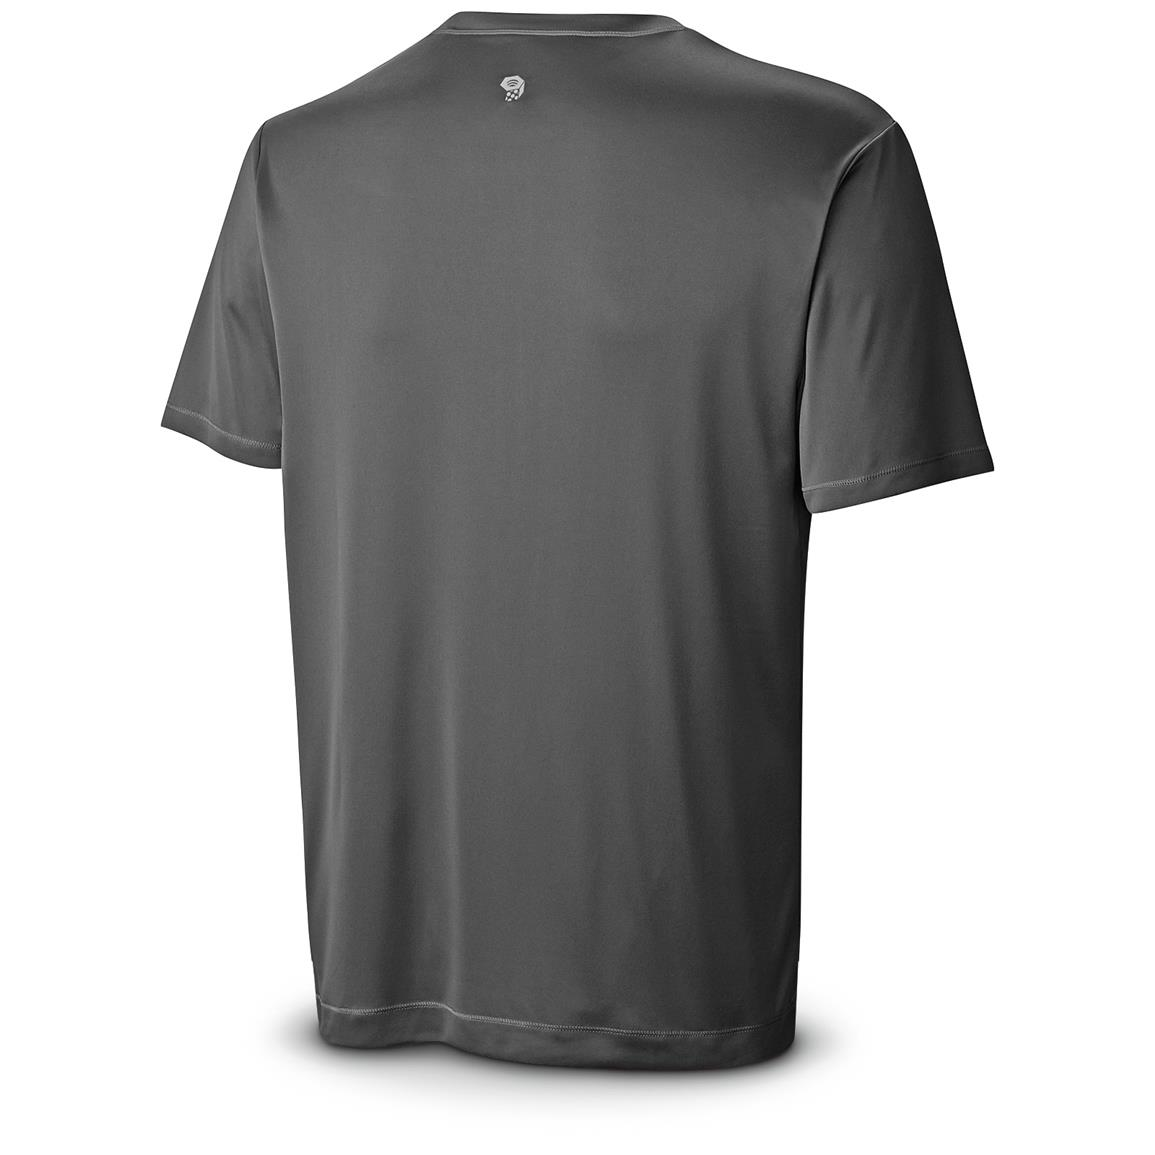 Mountain Hardwear Men's Wicked T-Shirt, Short Sleeved, Black Back